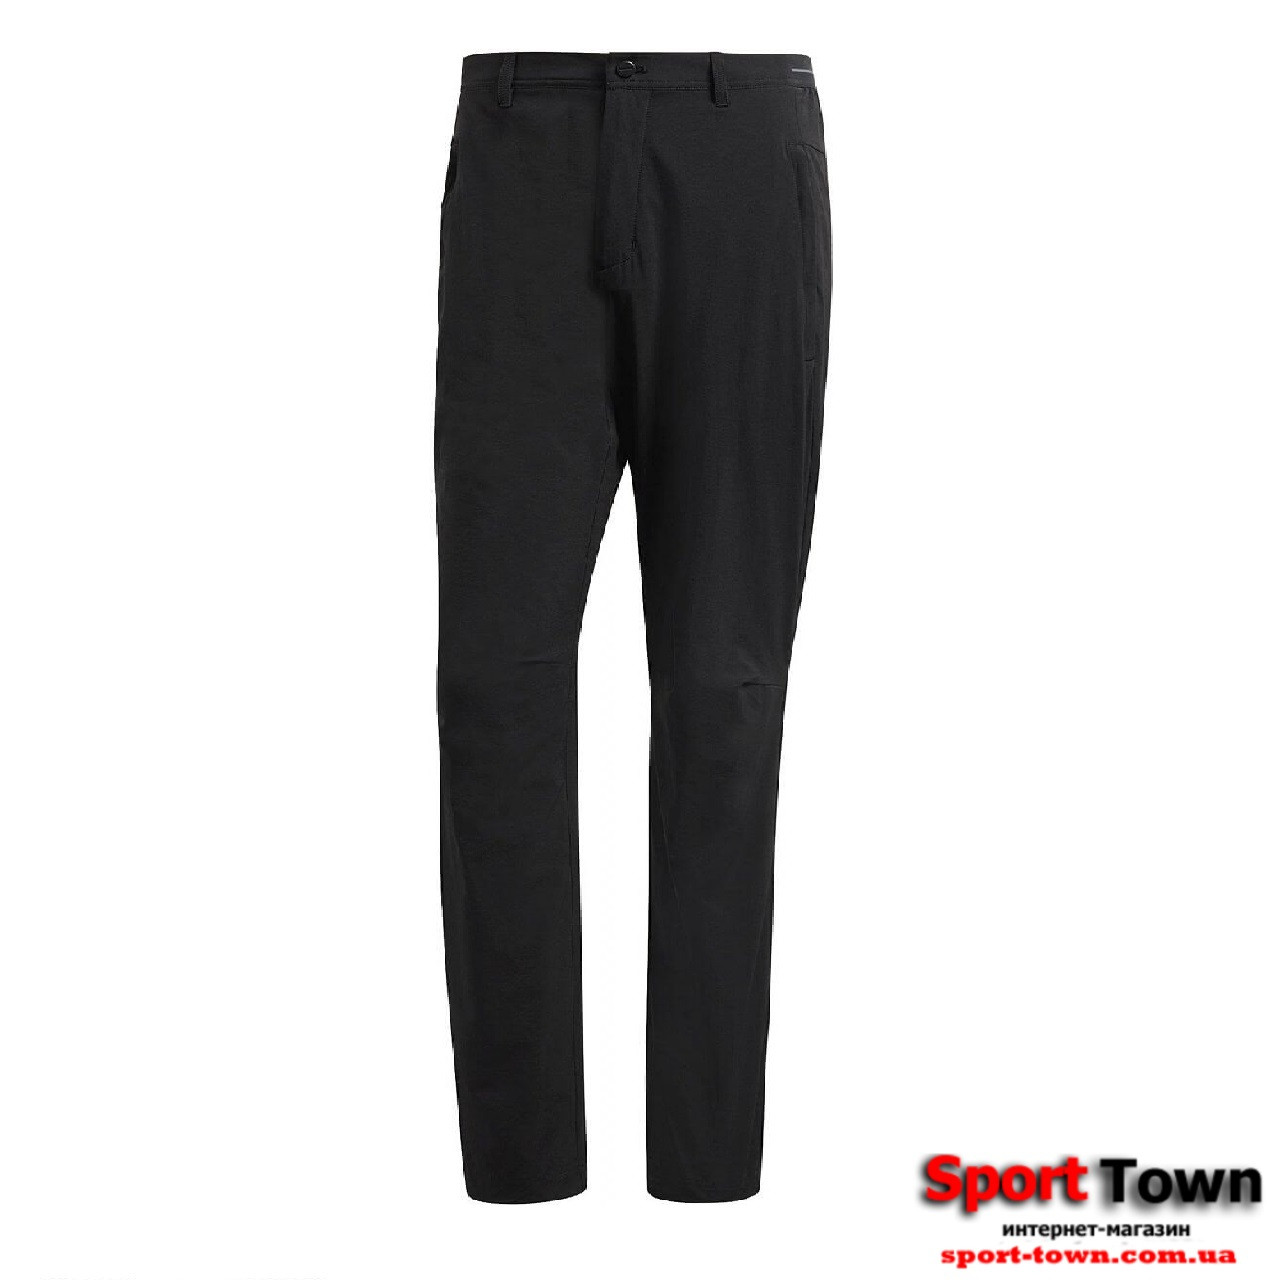 Adidas Men's LiteFlex Pants DQ1508 Оригинал